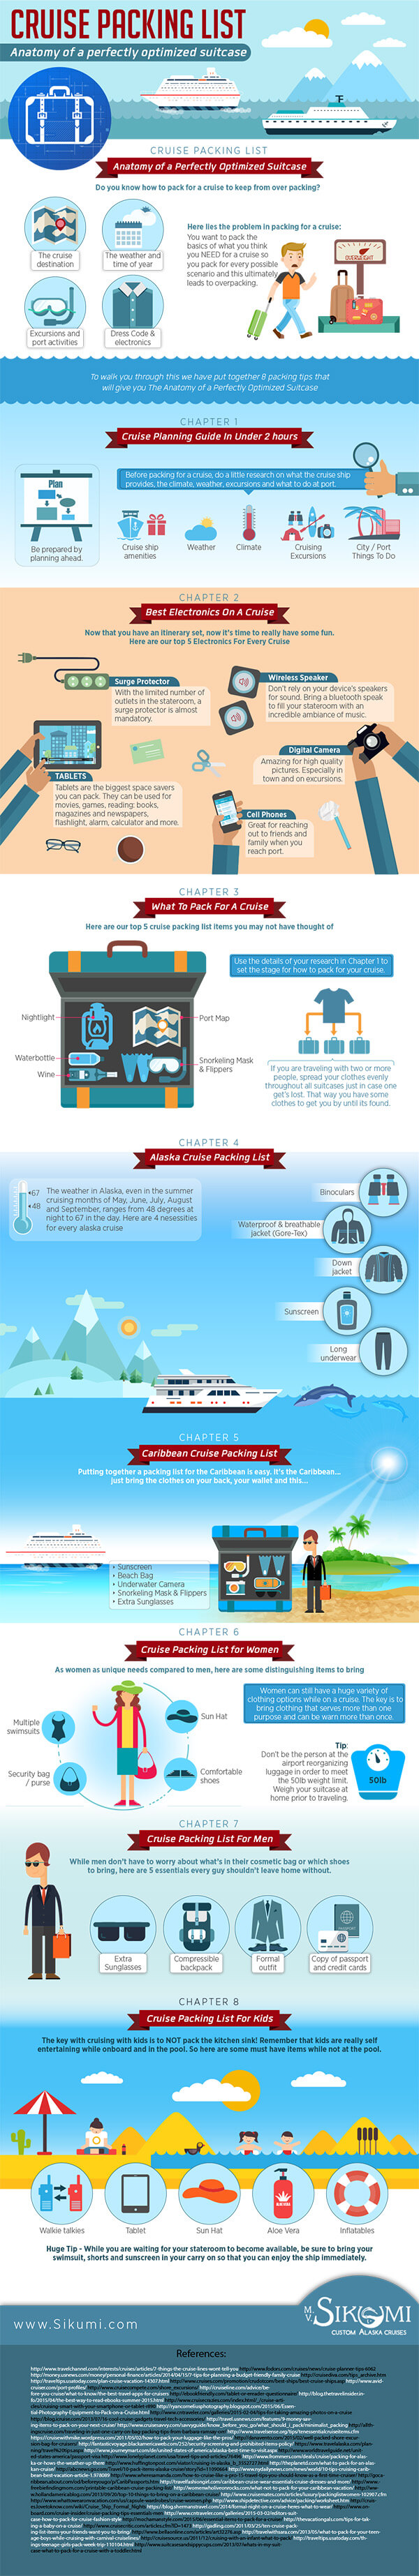 Cruise Packing List: The Definitive Guide - Sikumi.com